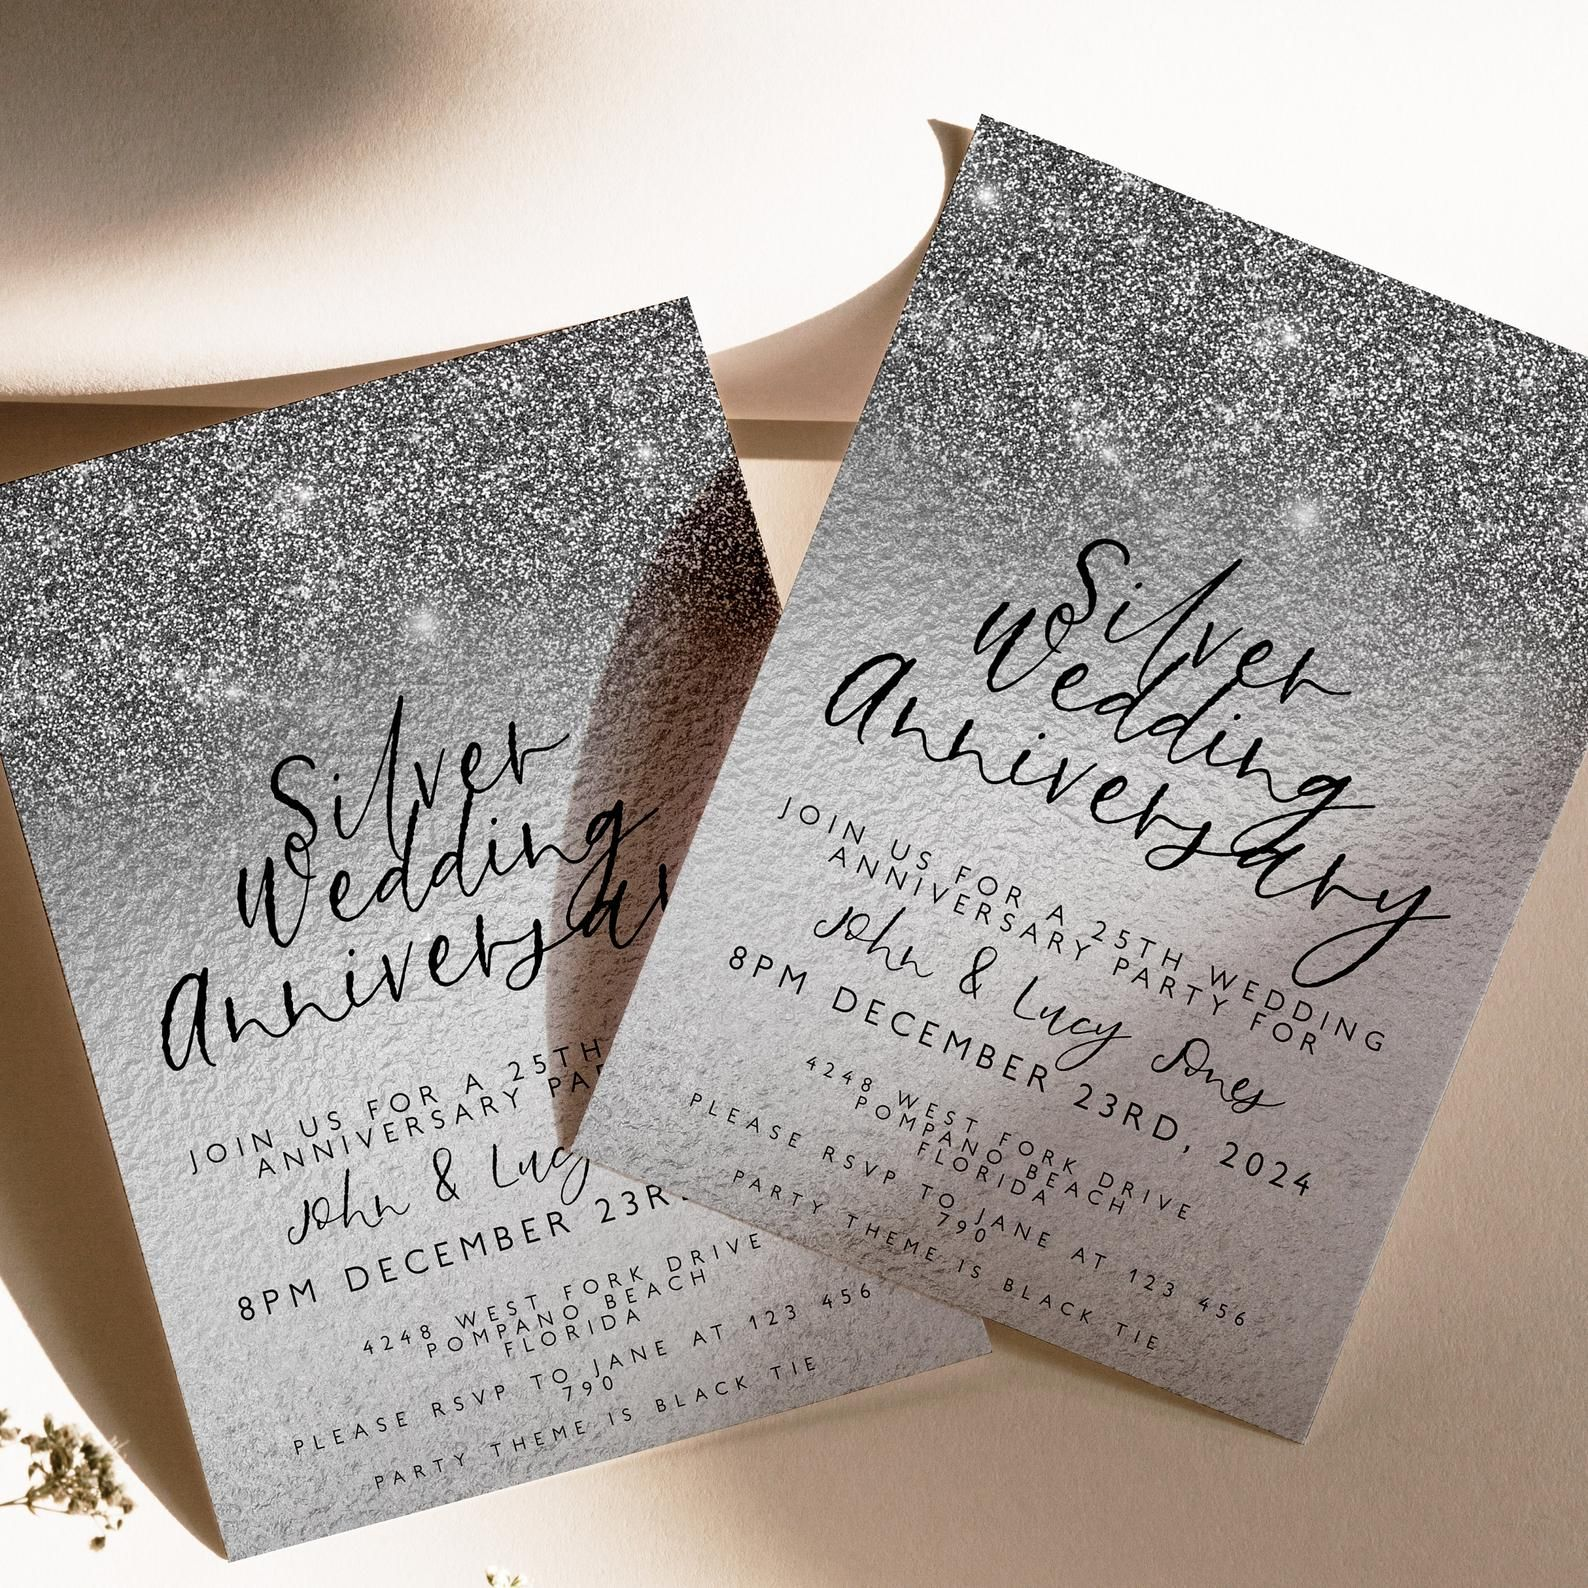 25th Anniversary Invitation 25th Wedding Anniversary Editable Invitation Template Silver Wedding Party Instant Download Printable Anniversary Invitations Wedding Anniversary Invitations 25th Wedding Anniversary